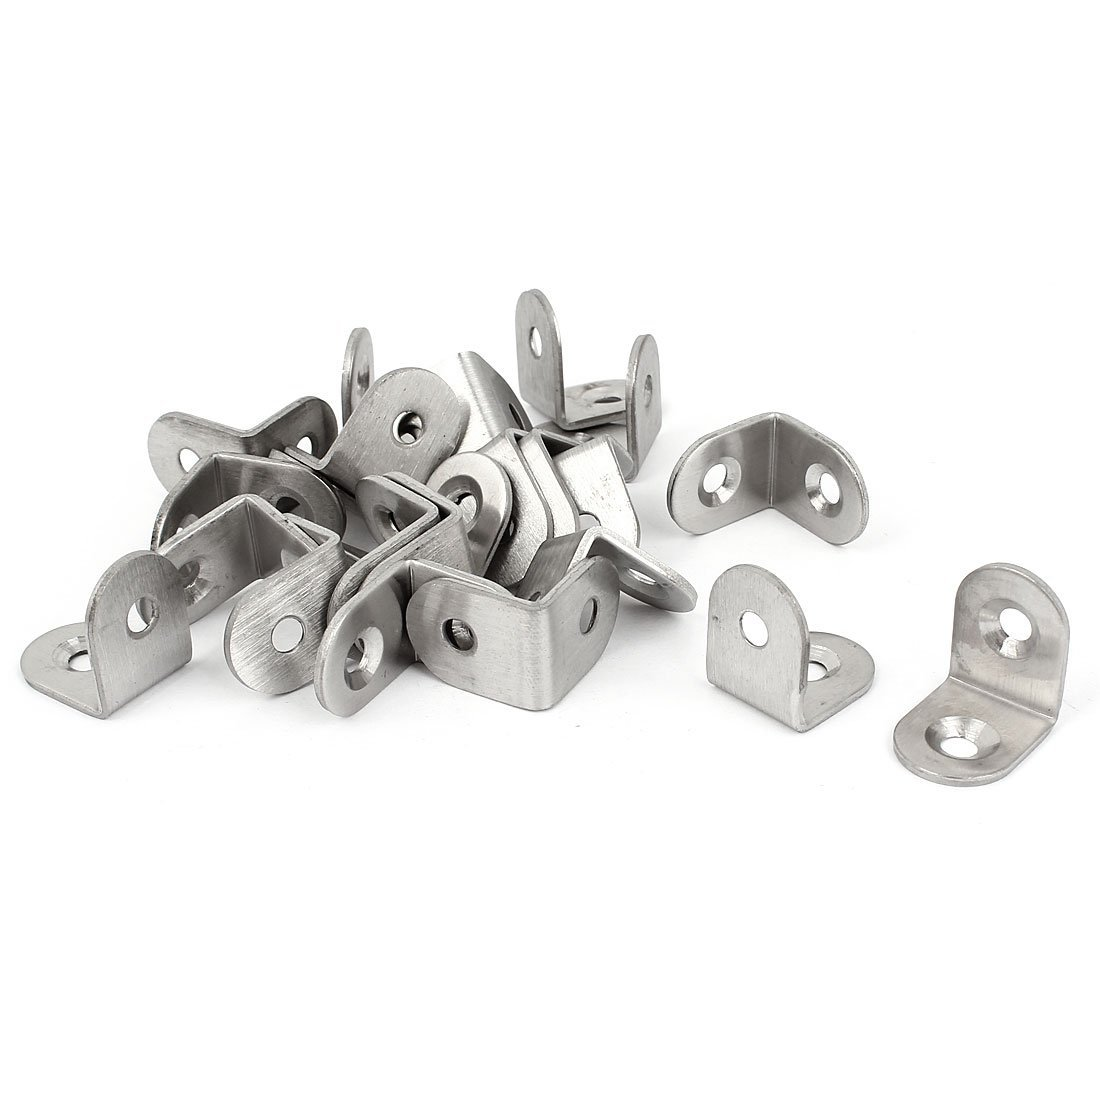 CNIM Hot Bracket - Furniture Shelf 20x20x15mm L Shaped Angle Brackets Supports clip 25 pieces